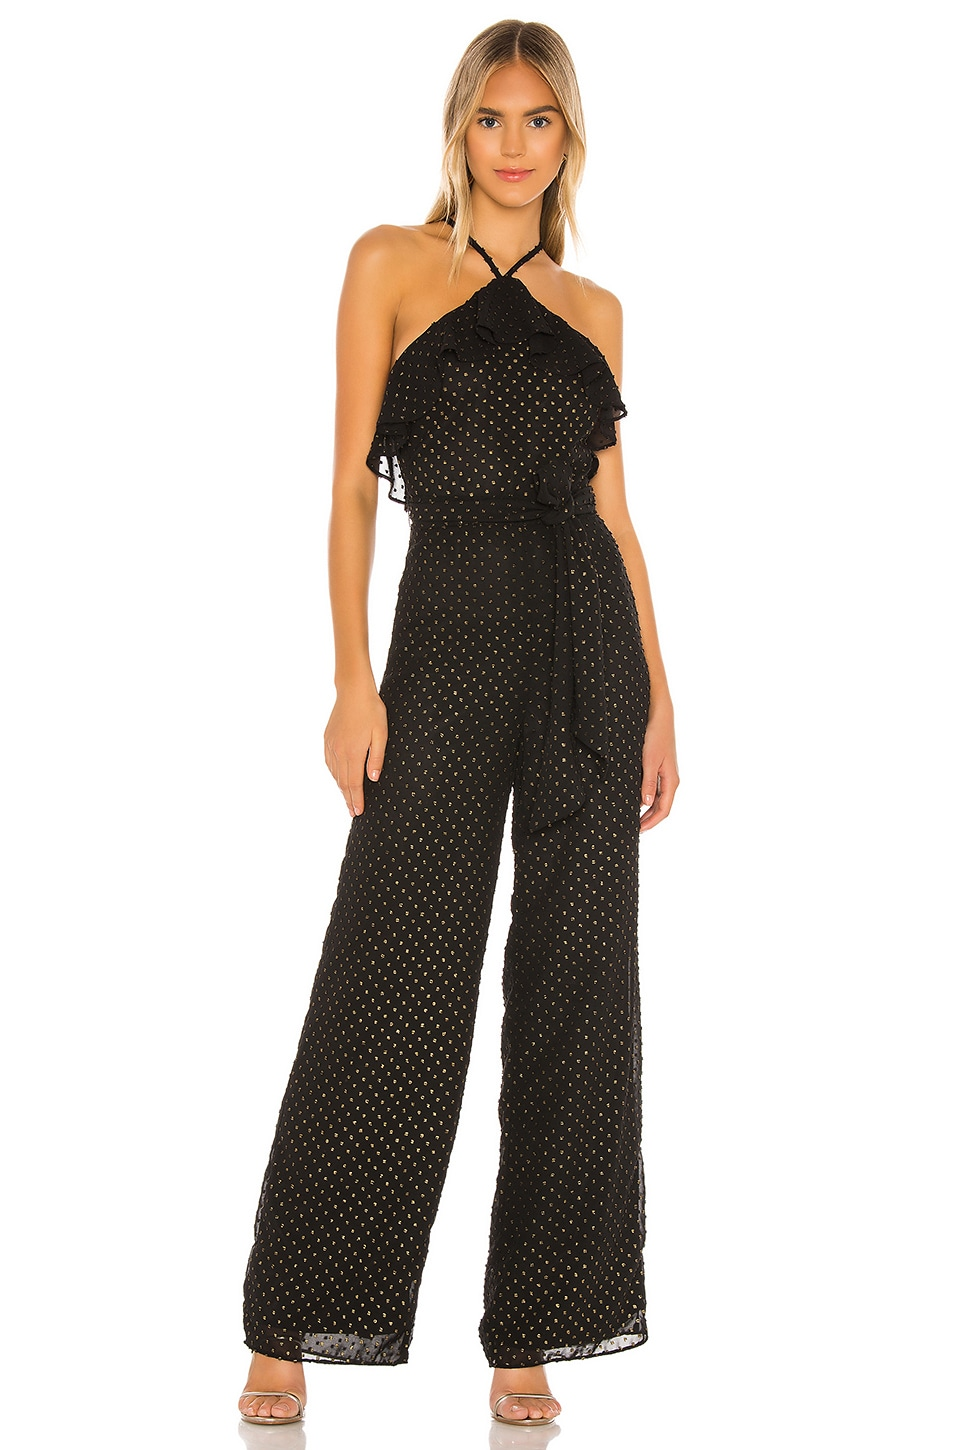 Privacy Please Kyra Jumpsuit en Black & Gold